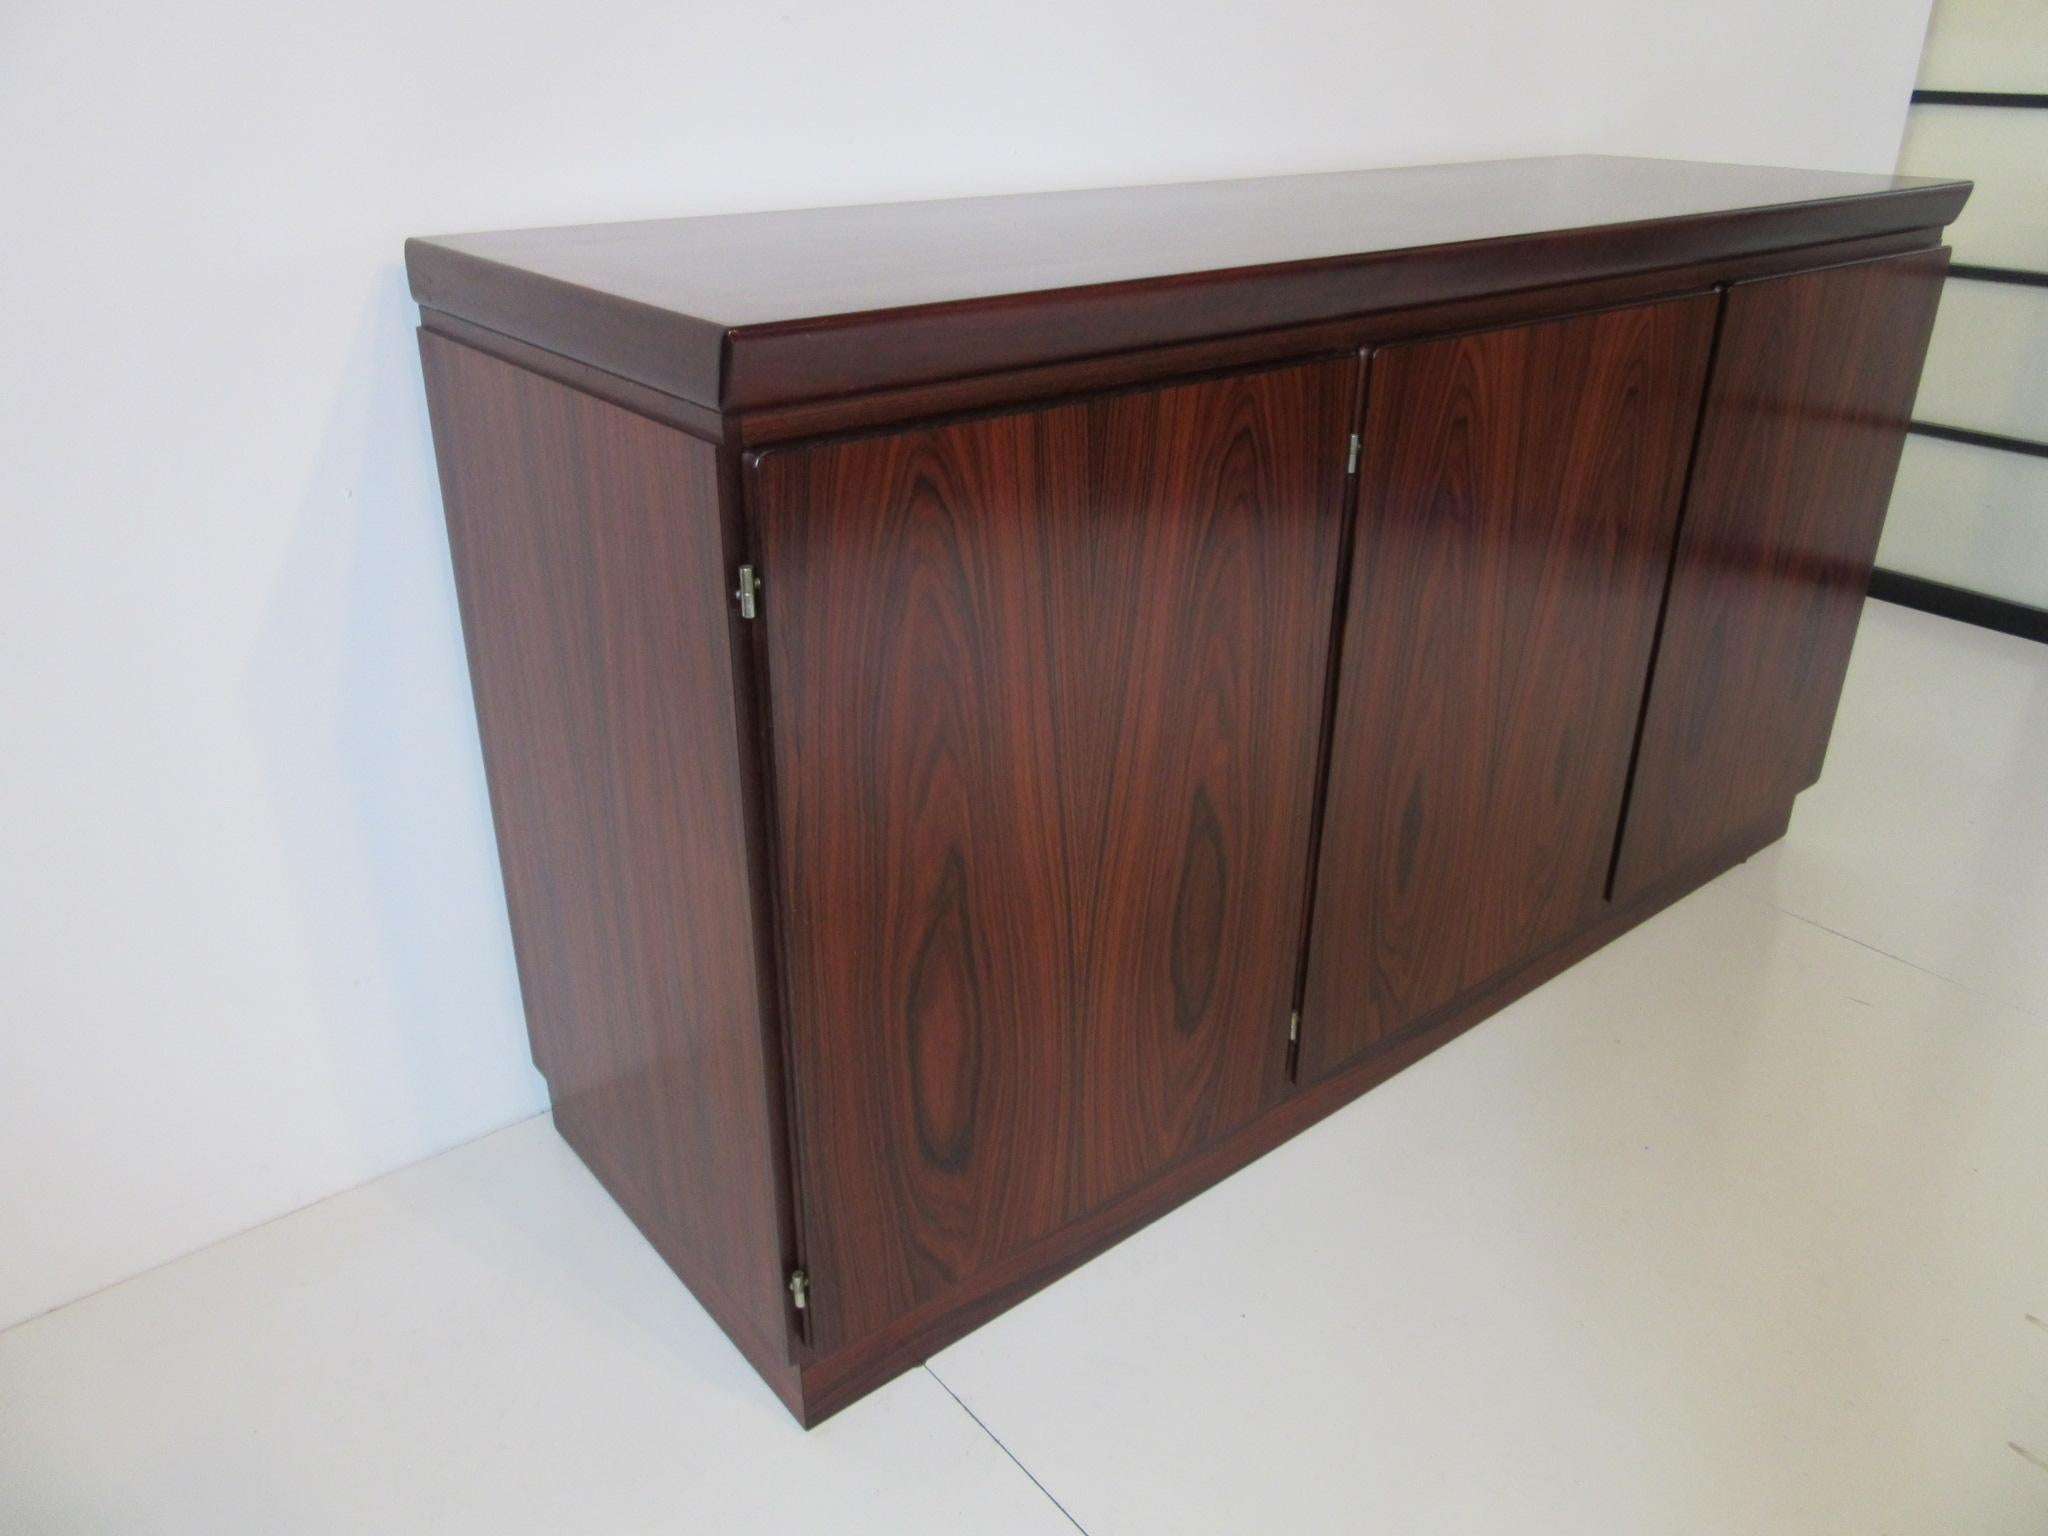 Danish Rosewood Credenza : Danish modern rosewood credenza by dyrlund for maurice villency